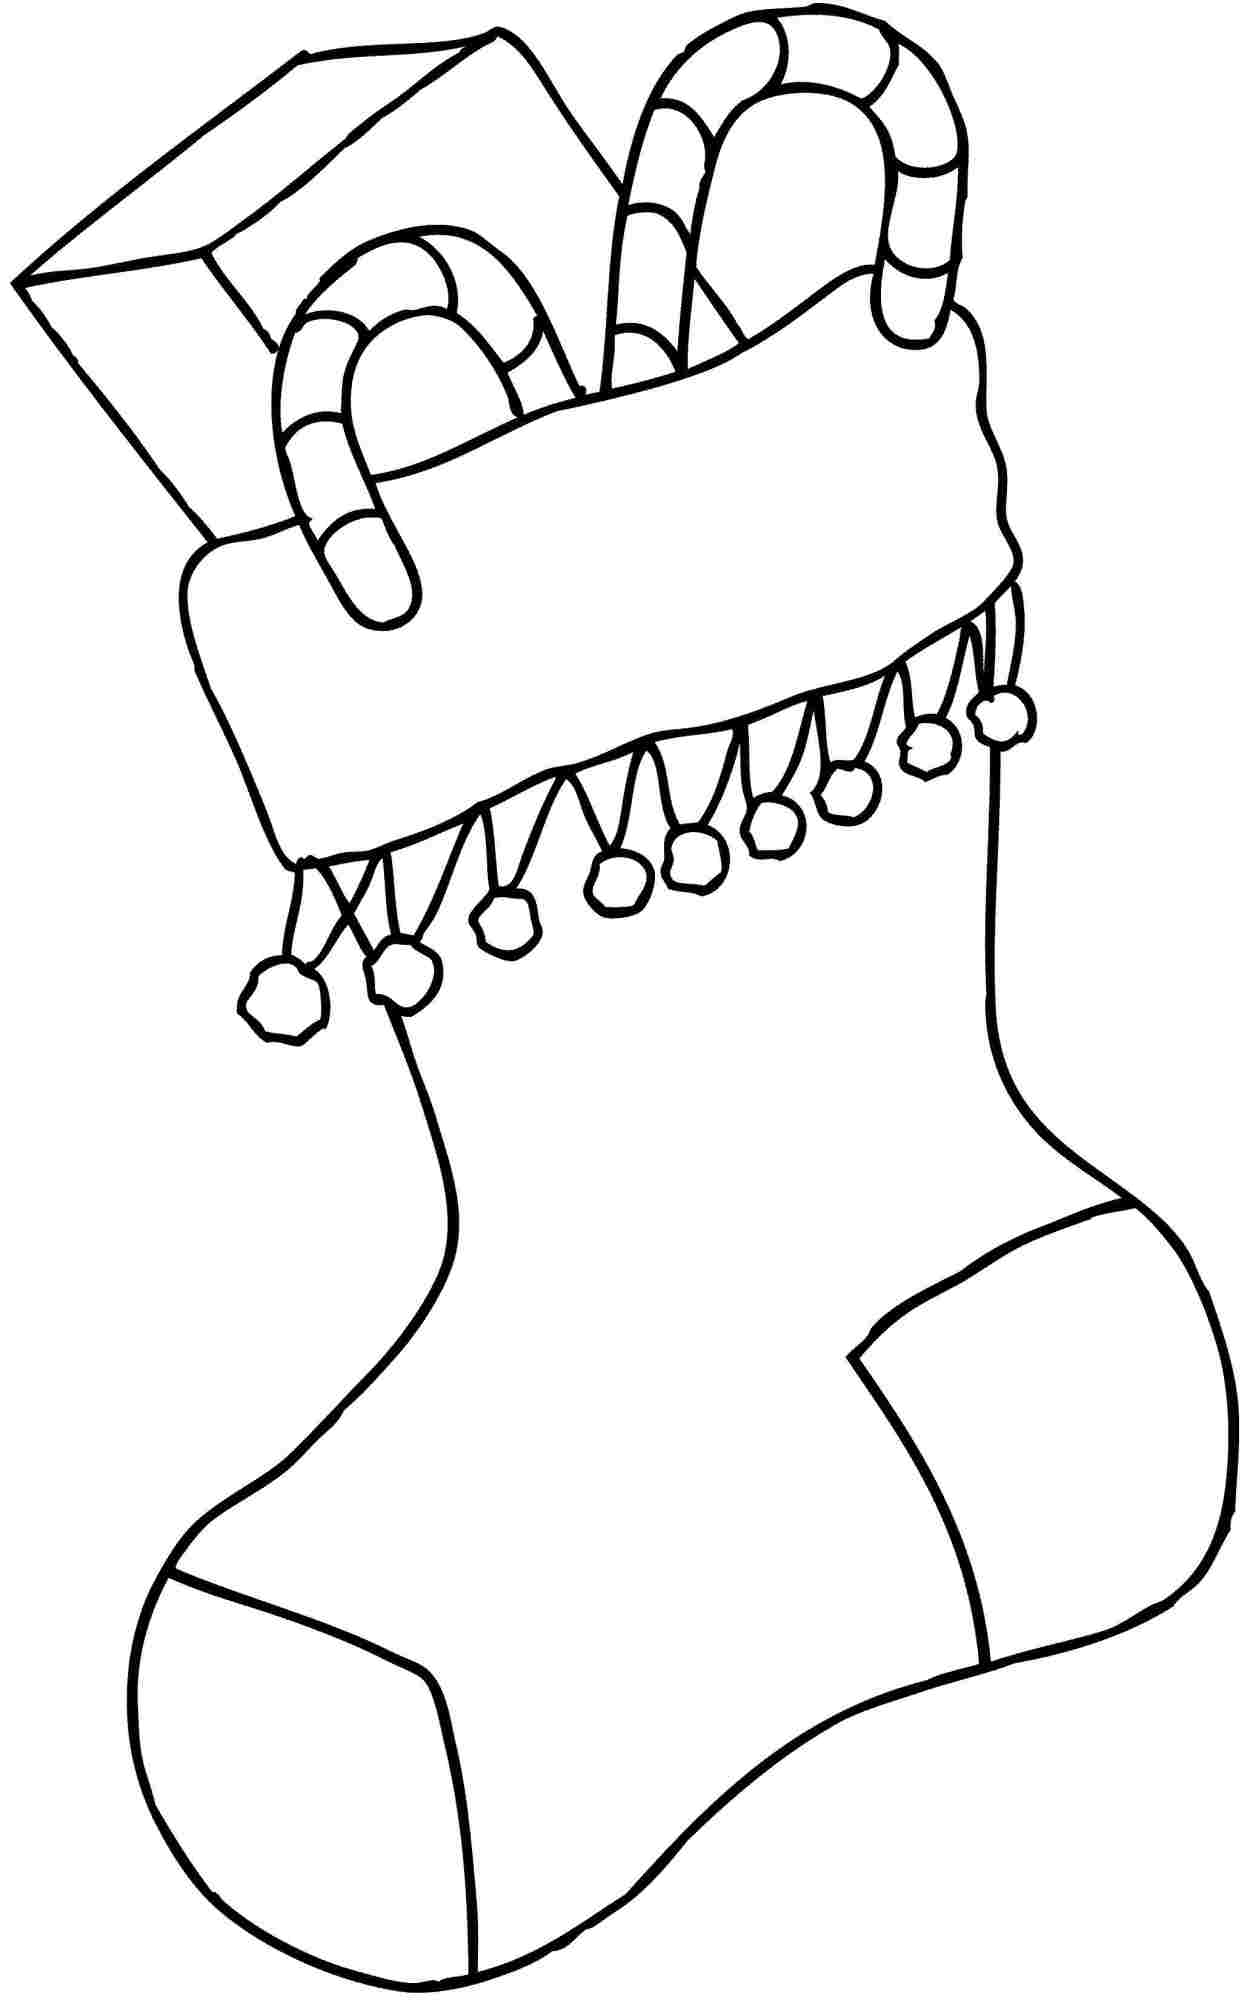 Christmas Stocking Template.Christmas Stocking Picture Free Download Best Christmas